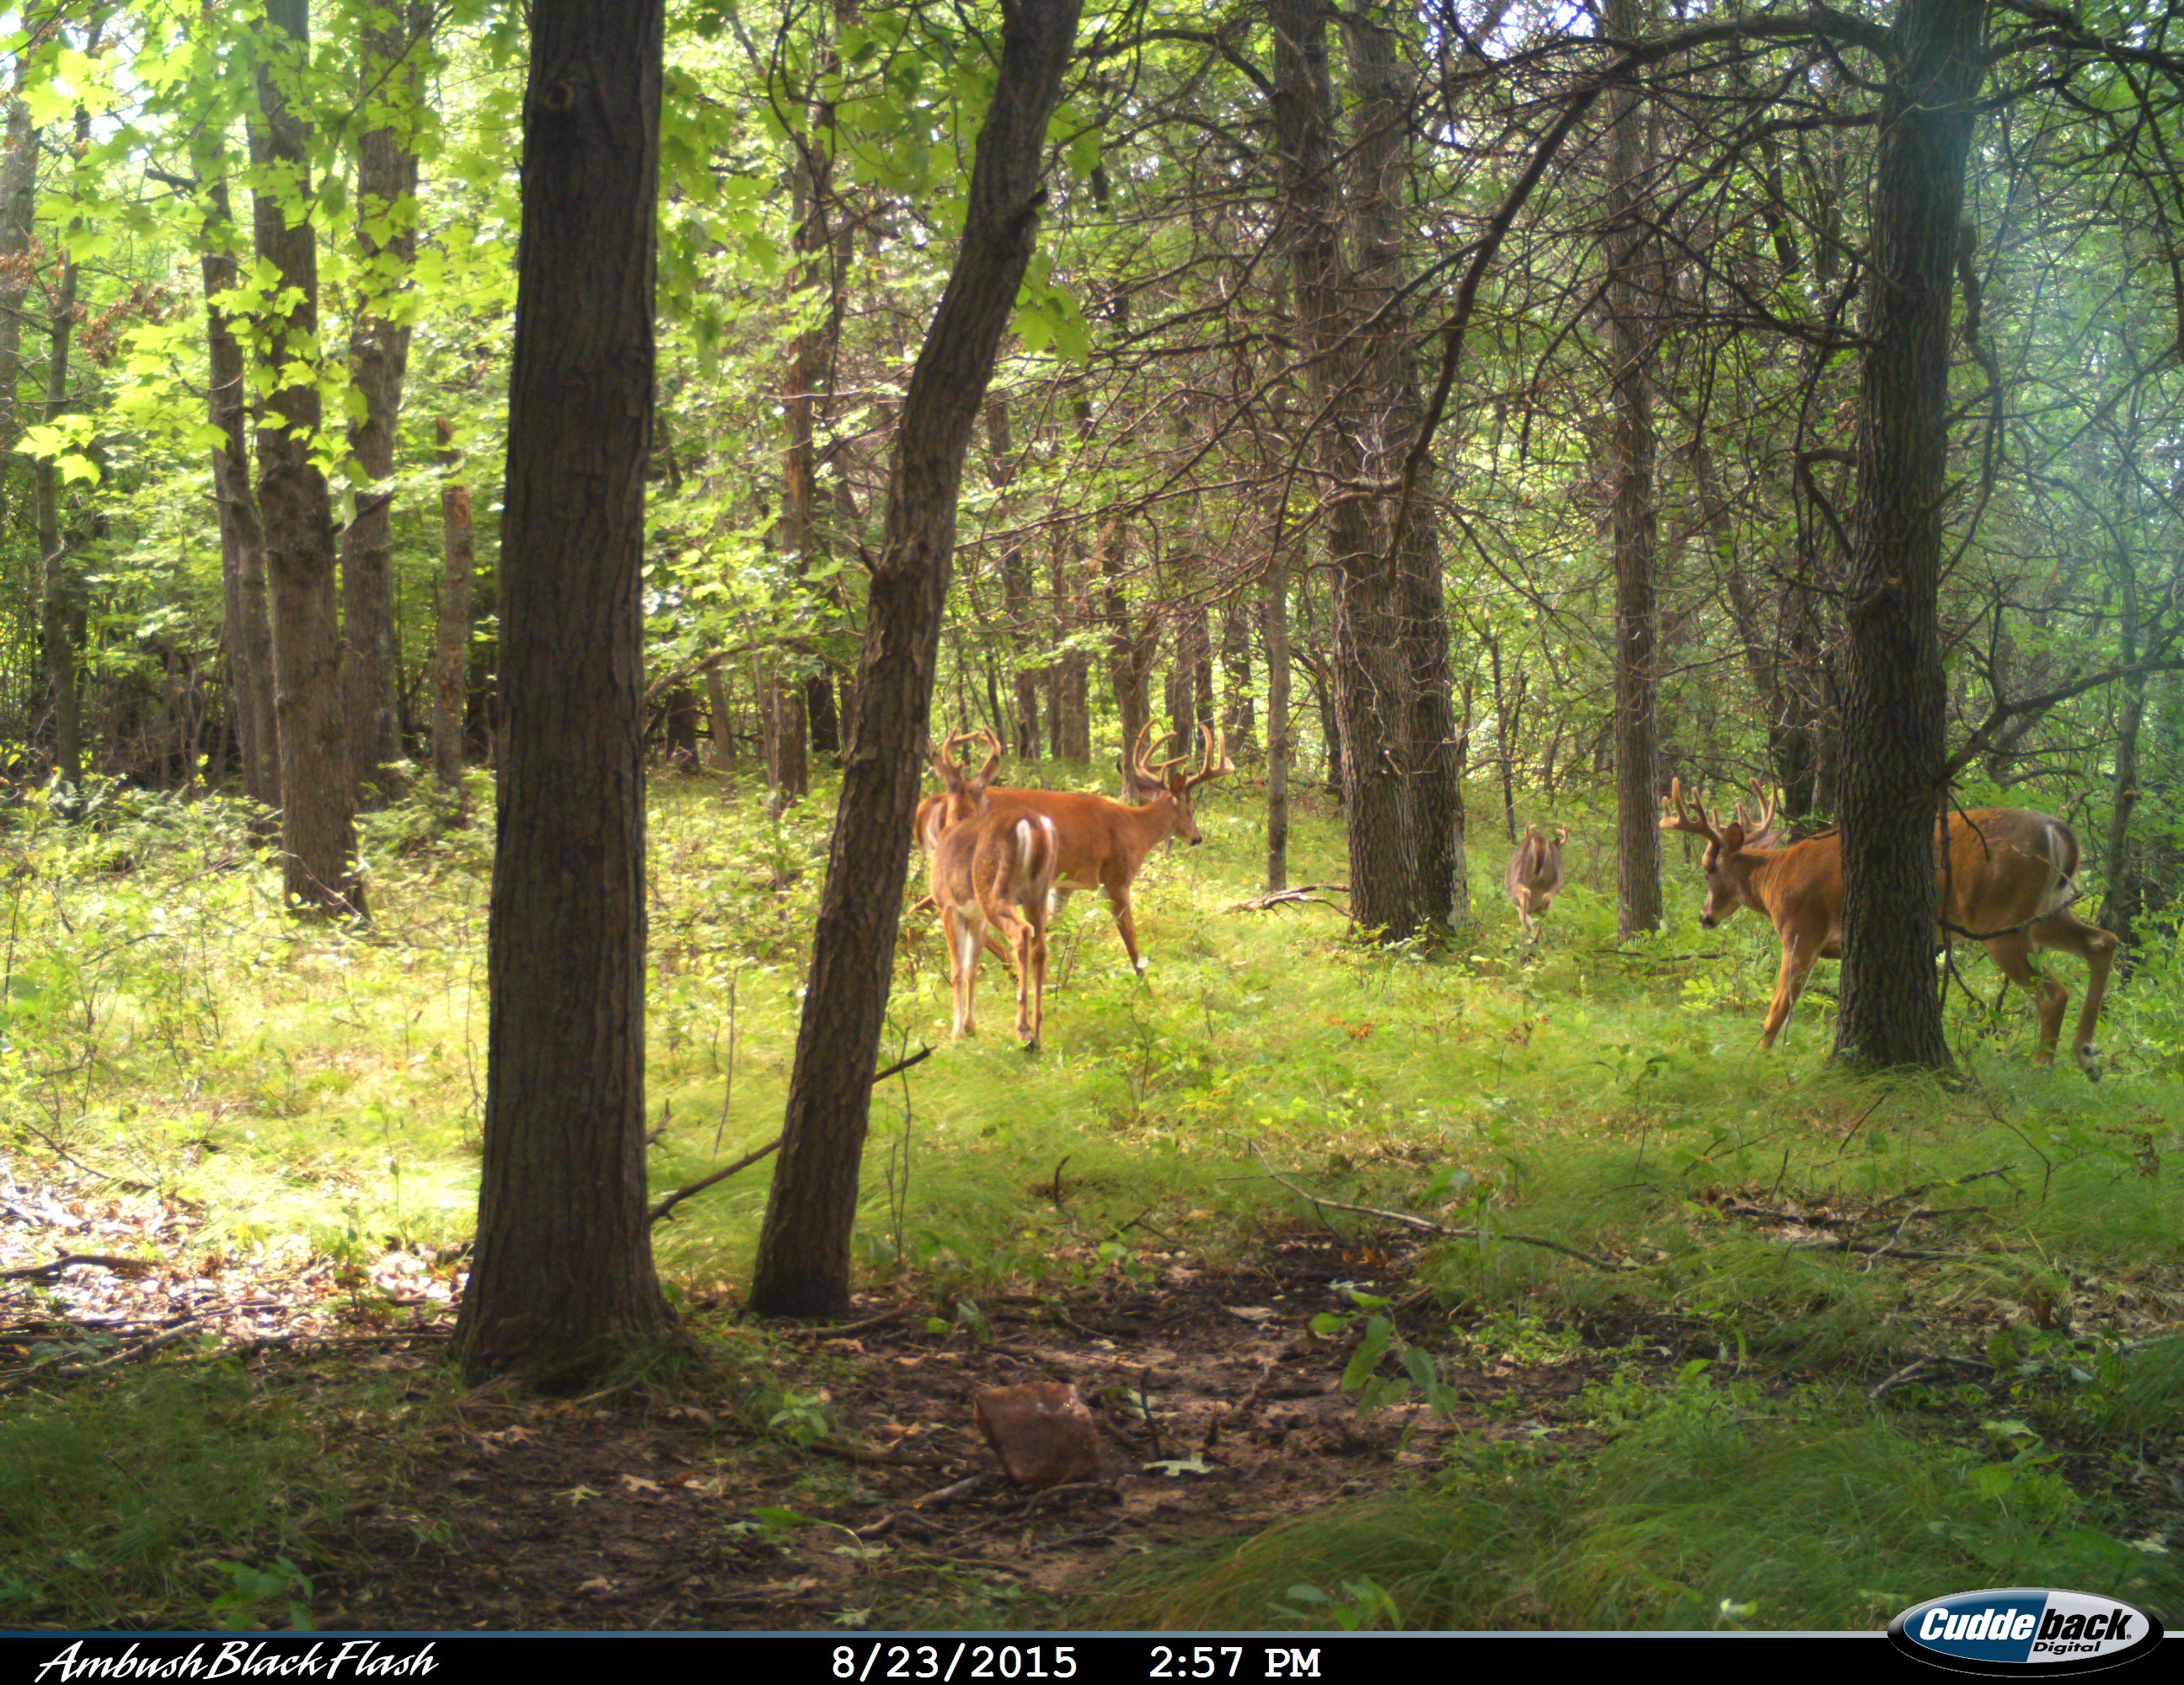 Photographer - Trail Cam by Jim Krueger - 2015 - available under Creative Commons license CC BY-SA 4.0